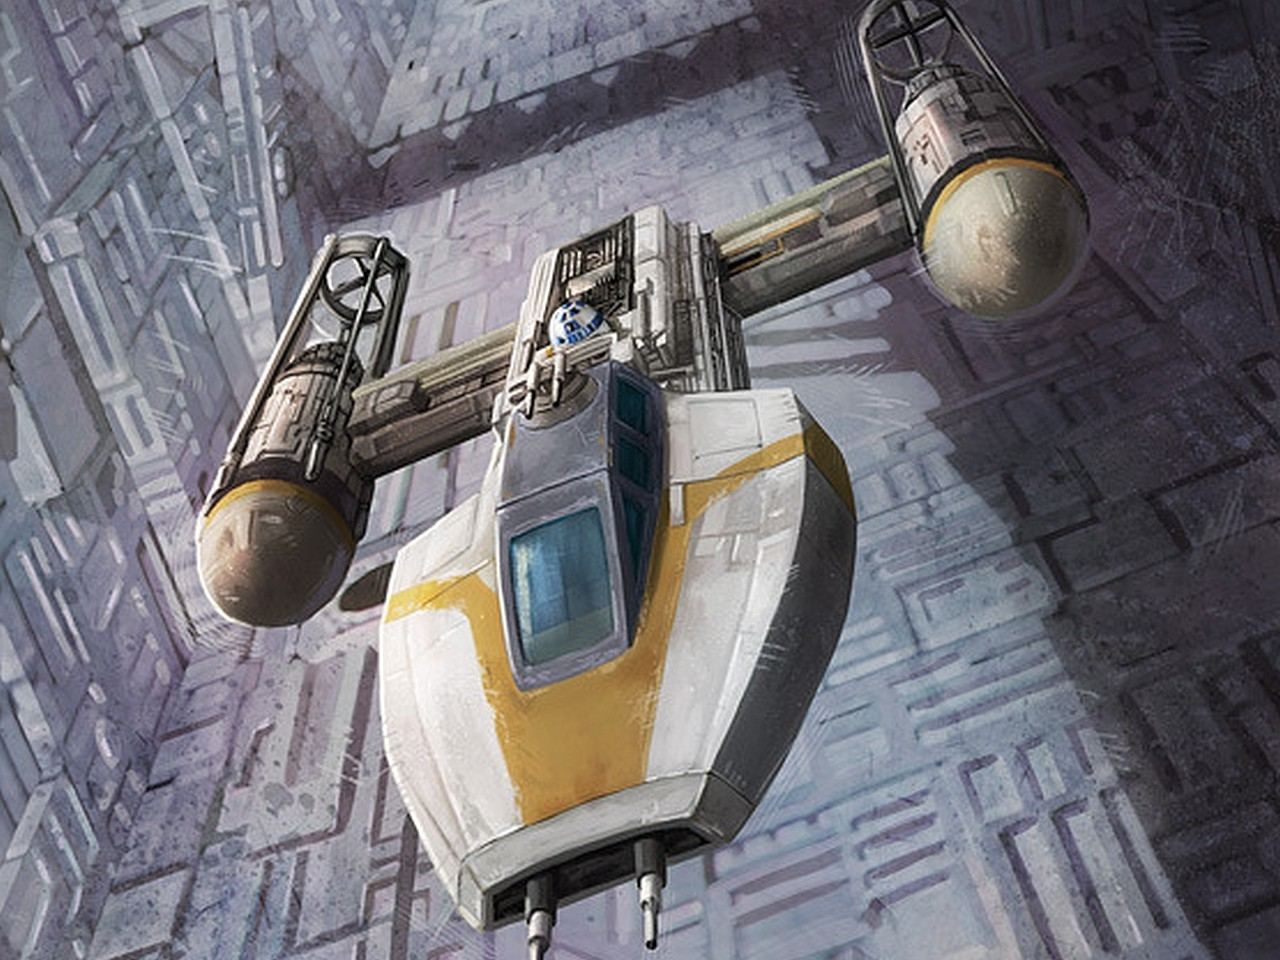 Cool Minecraft Wallpapers Hd Star Wars Y Wing Wallpapers Hd Desktop And Mobile